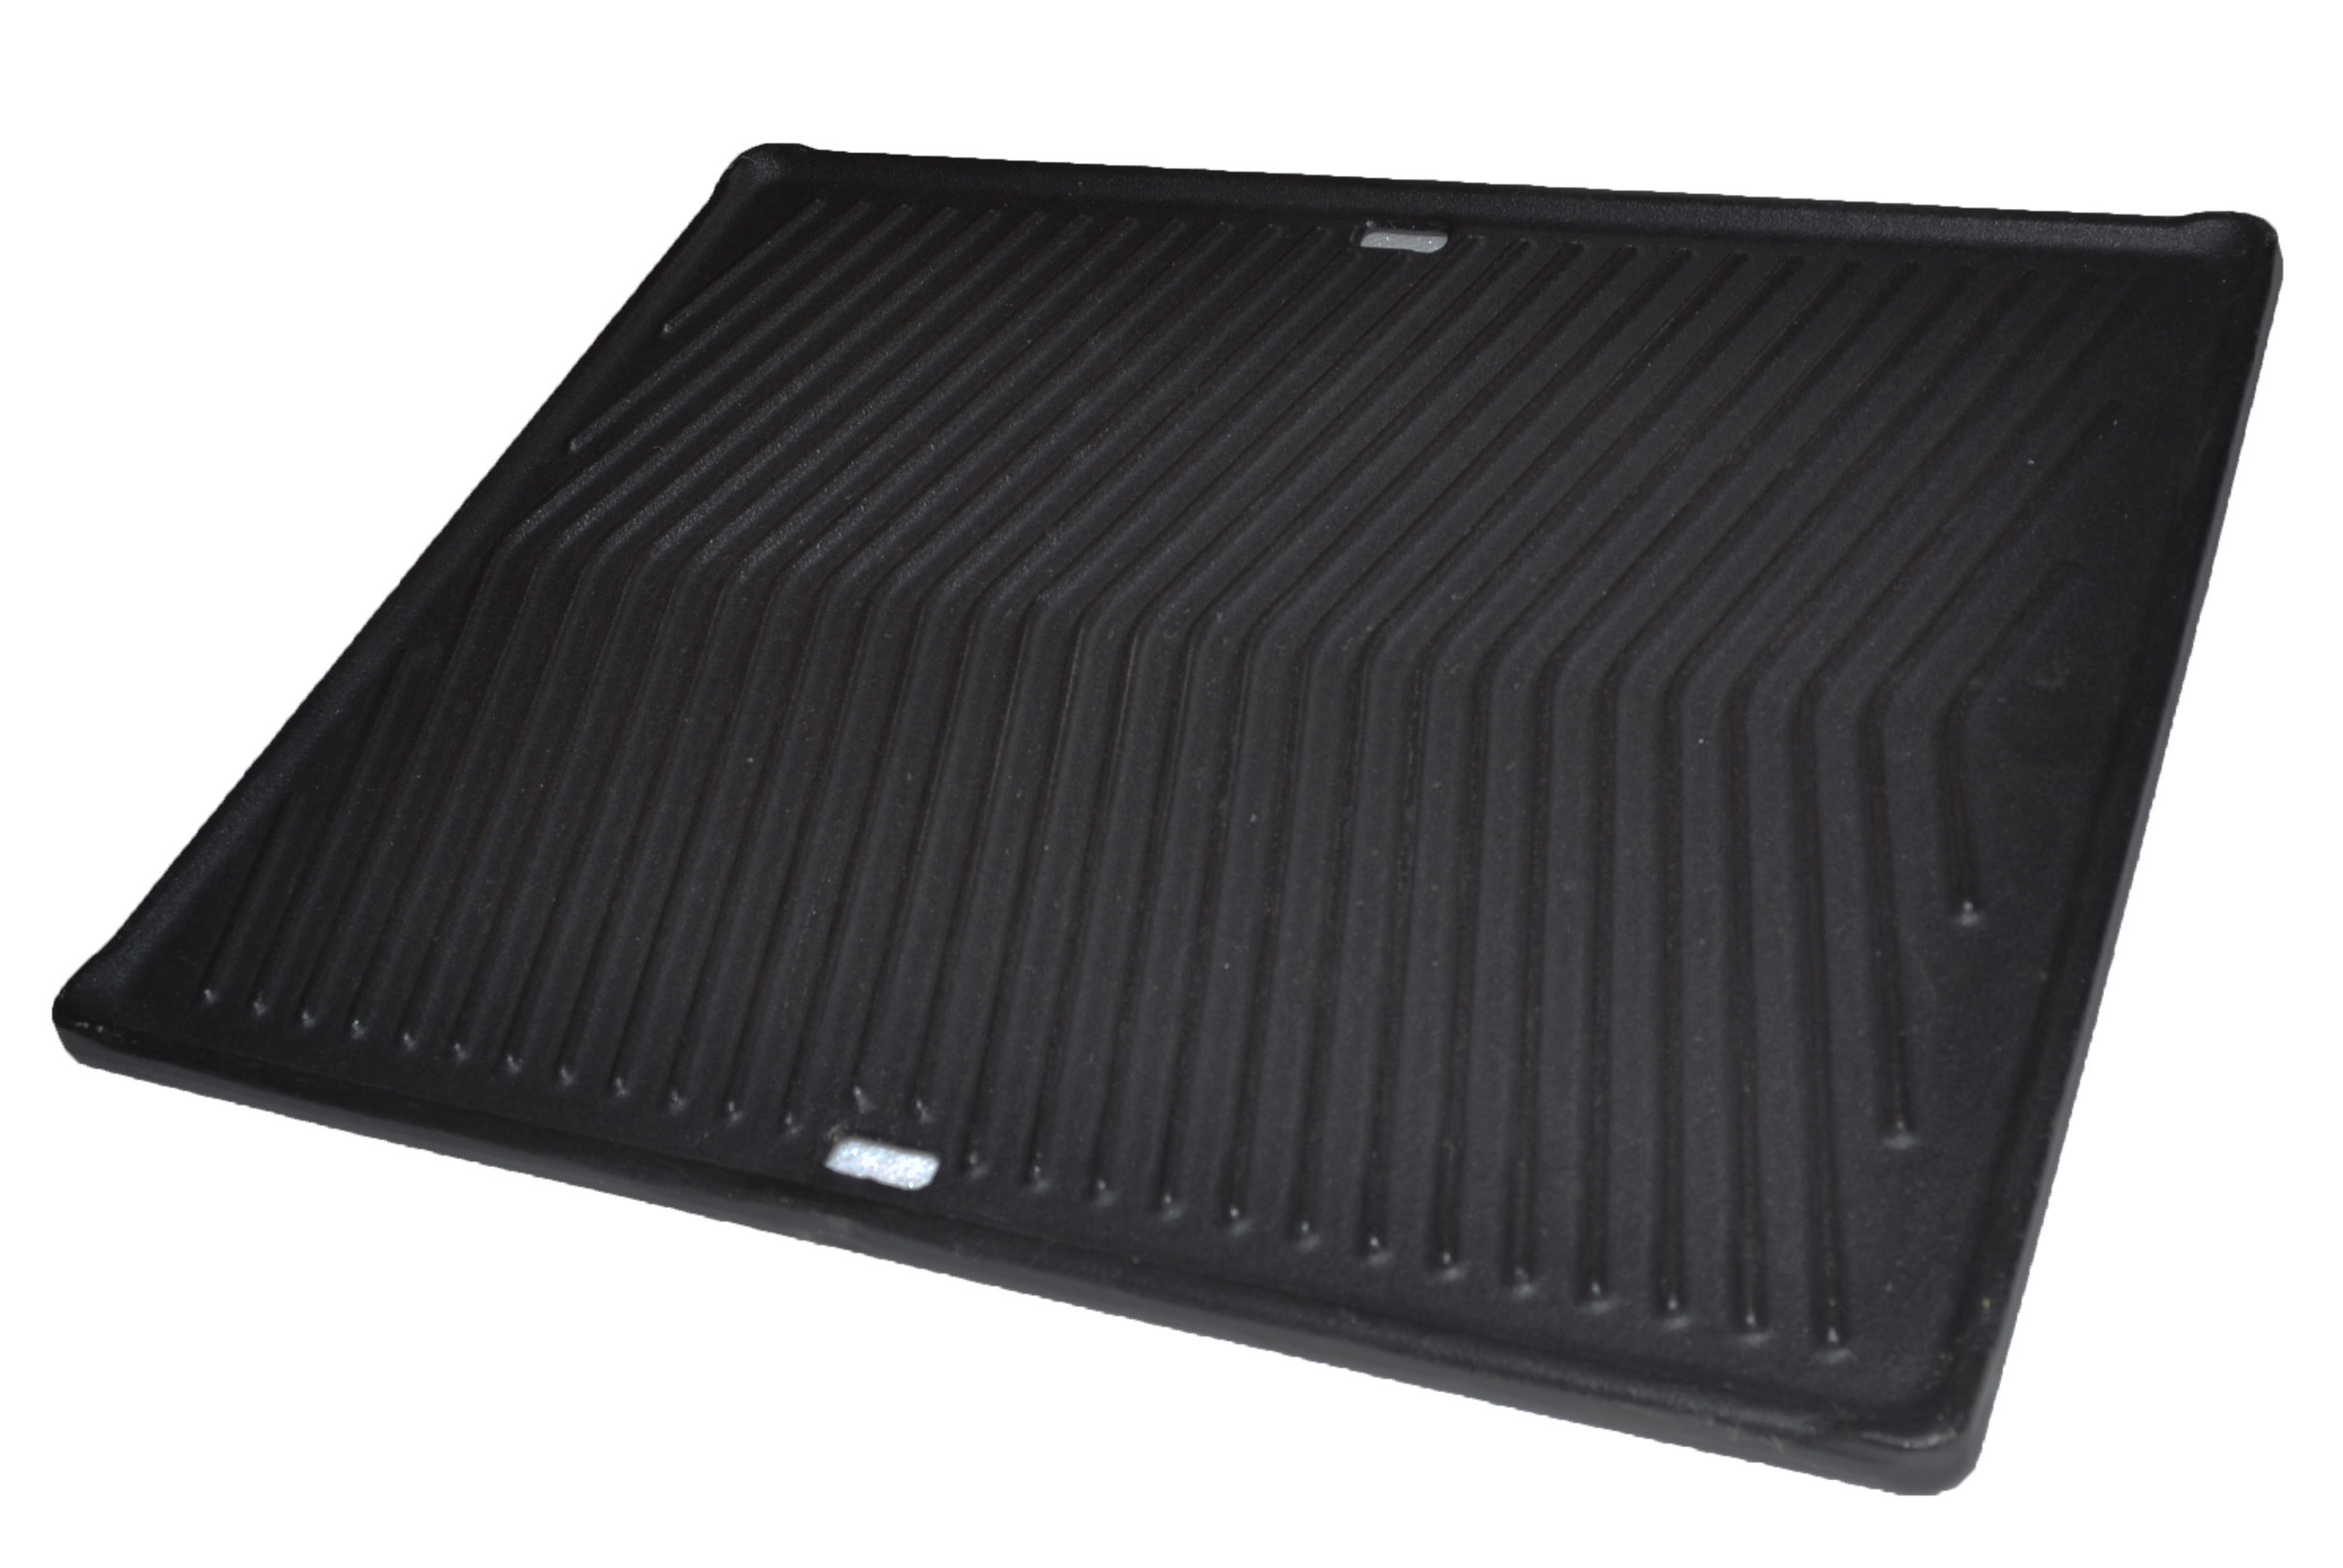 Mont Alpi Heavy Duty Griddle - The Mont Alpi heavy duty cast iron griddle plate will bring versatility to your grill. Grilling vegetables, fish etc has never been easier!